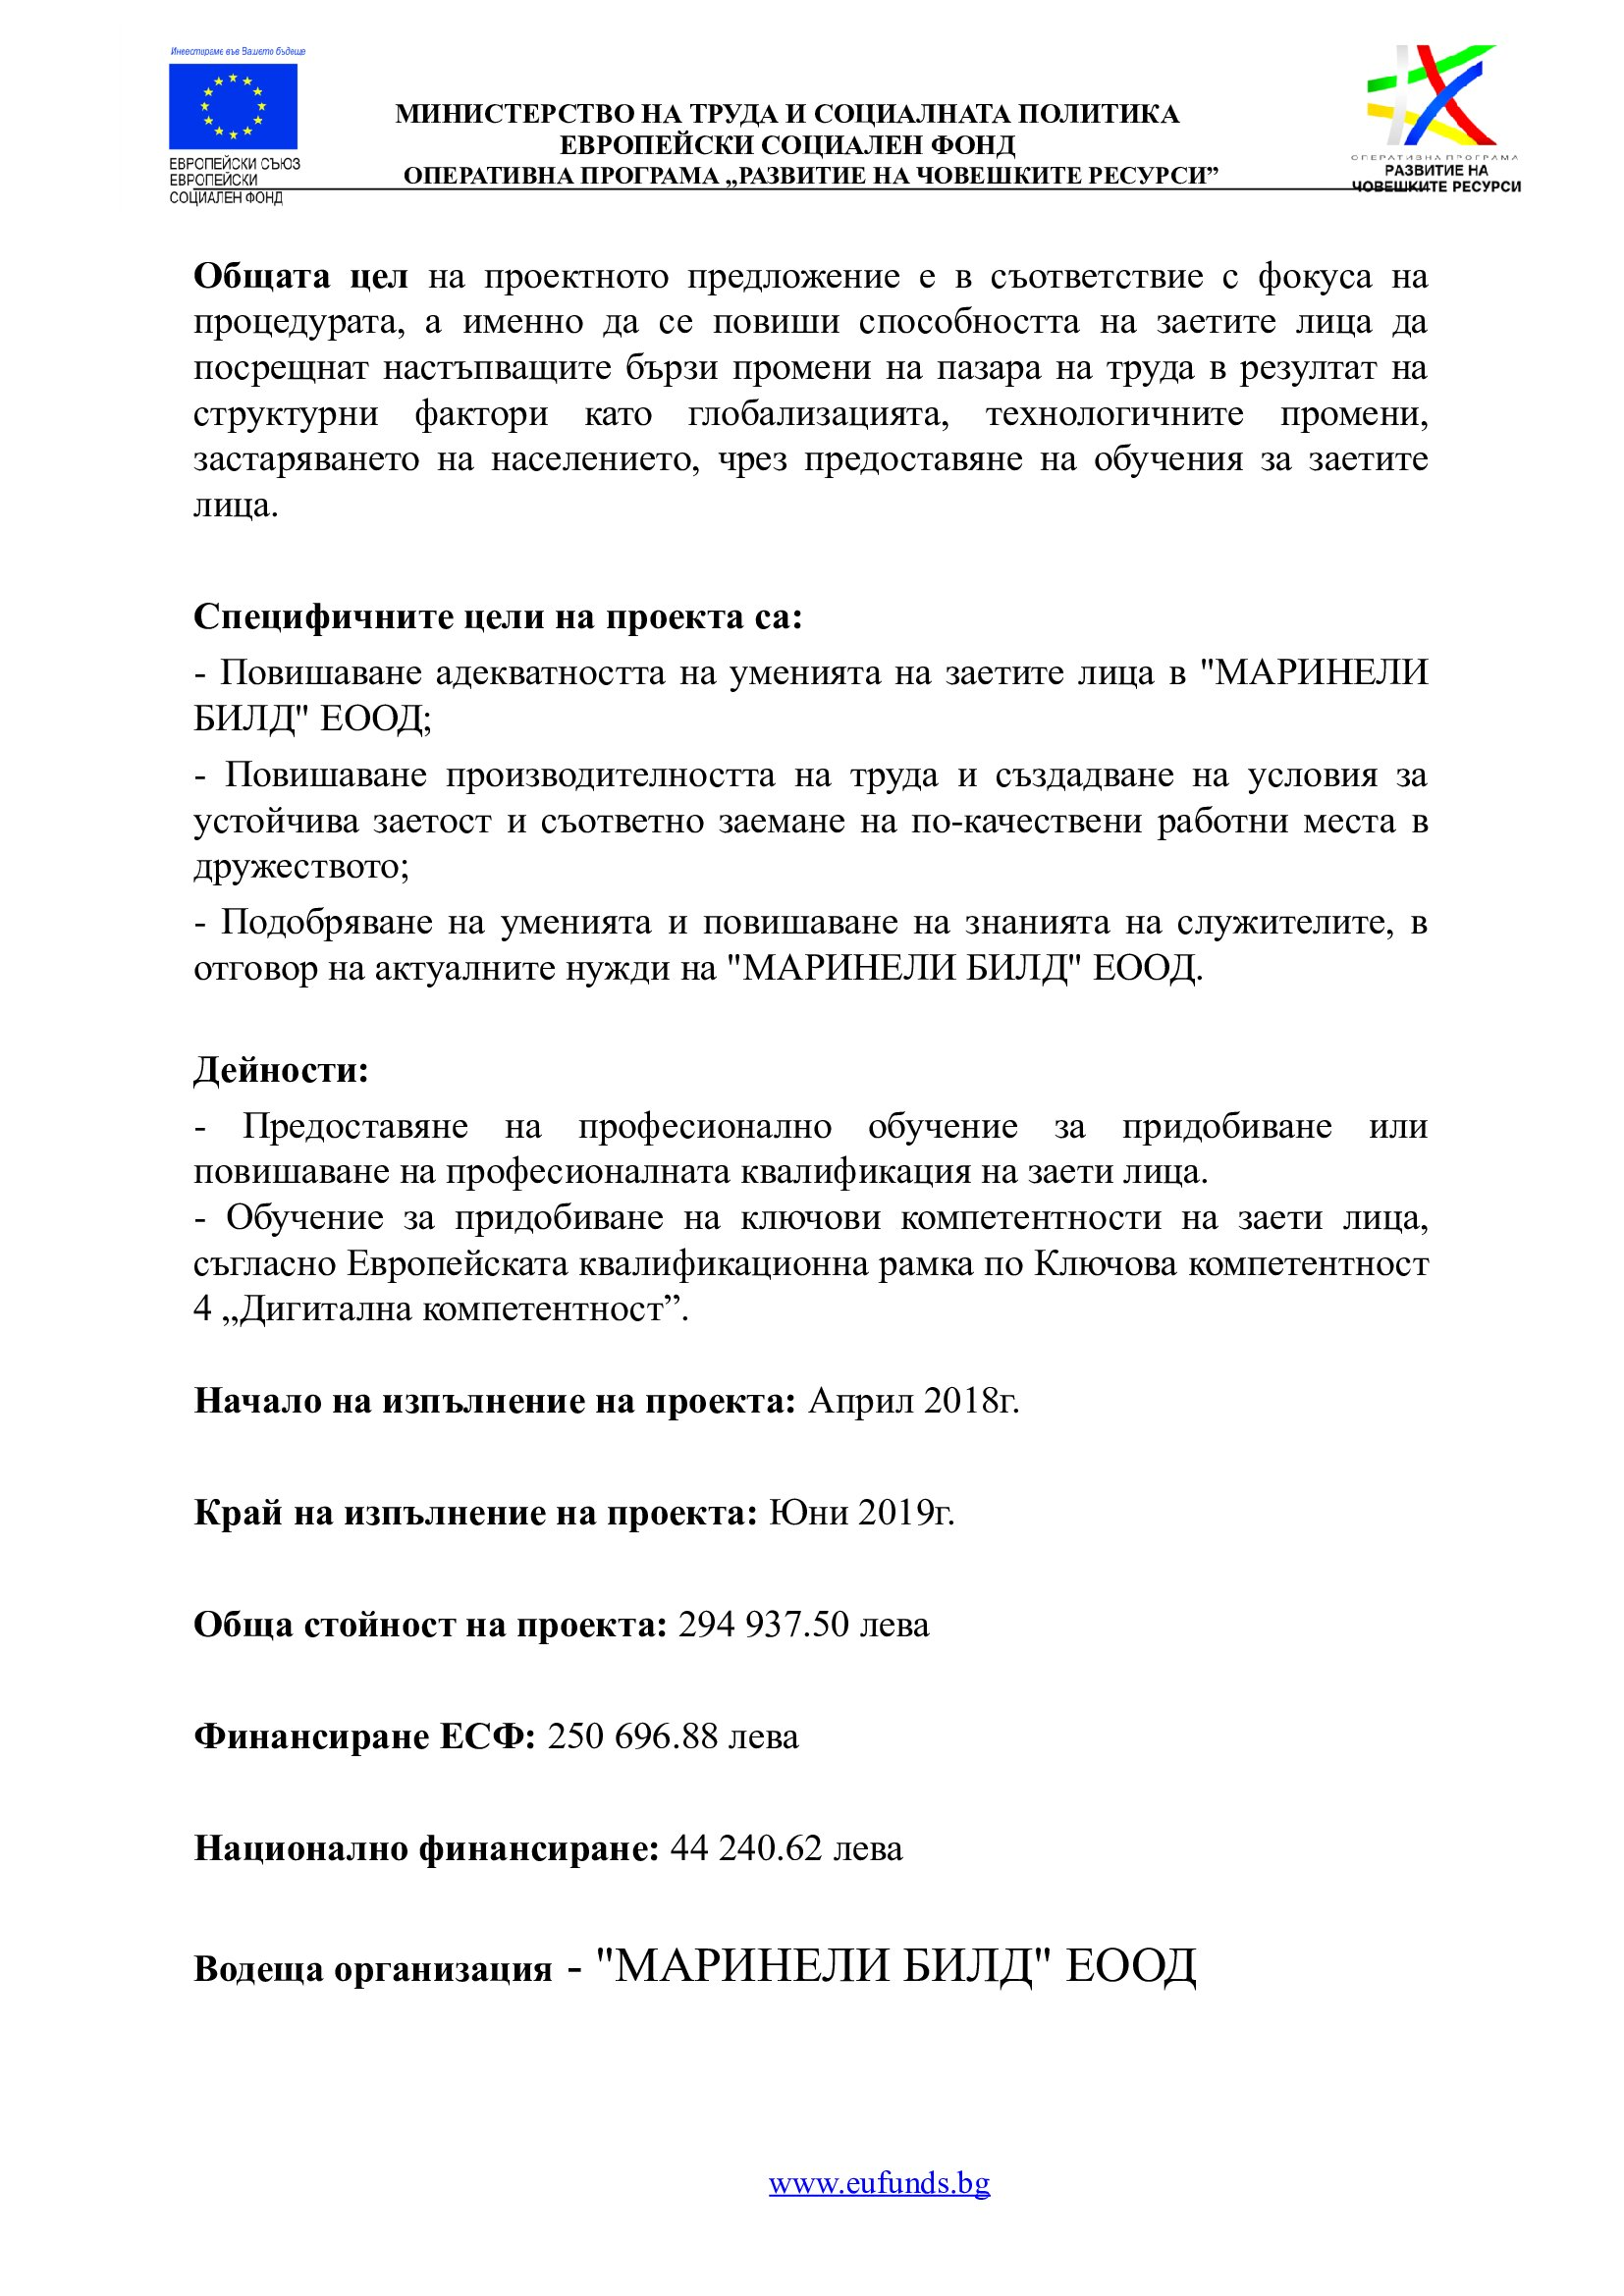 attachments/events/dogovorEU/project info sait_001.jpg